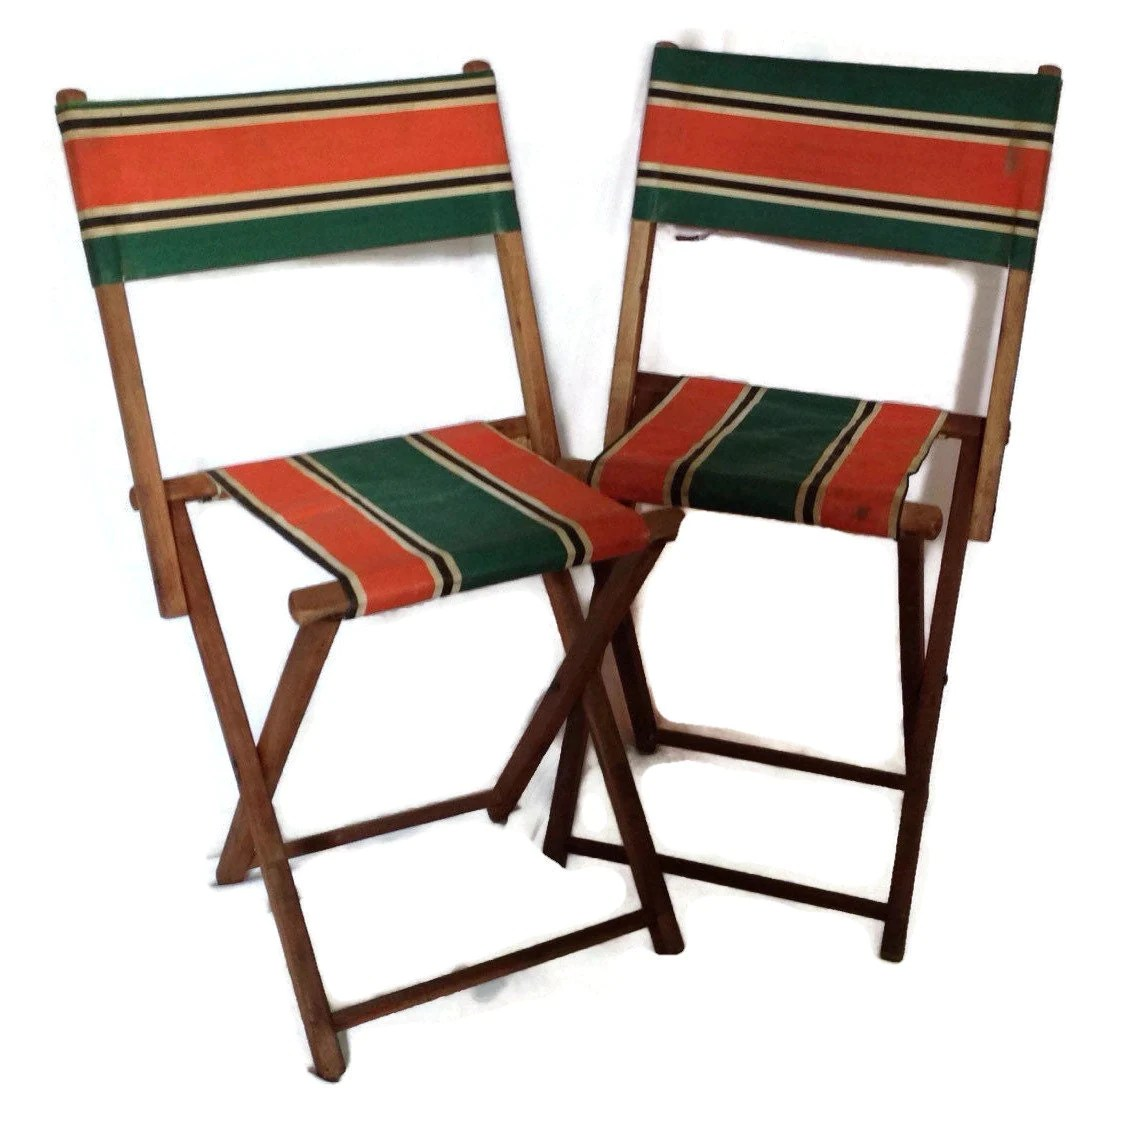 Folding Wood Beach Chair Child 39s Folding Chairs Vintage Wood And Striped Canvas Set